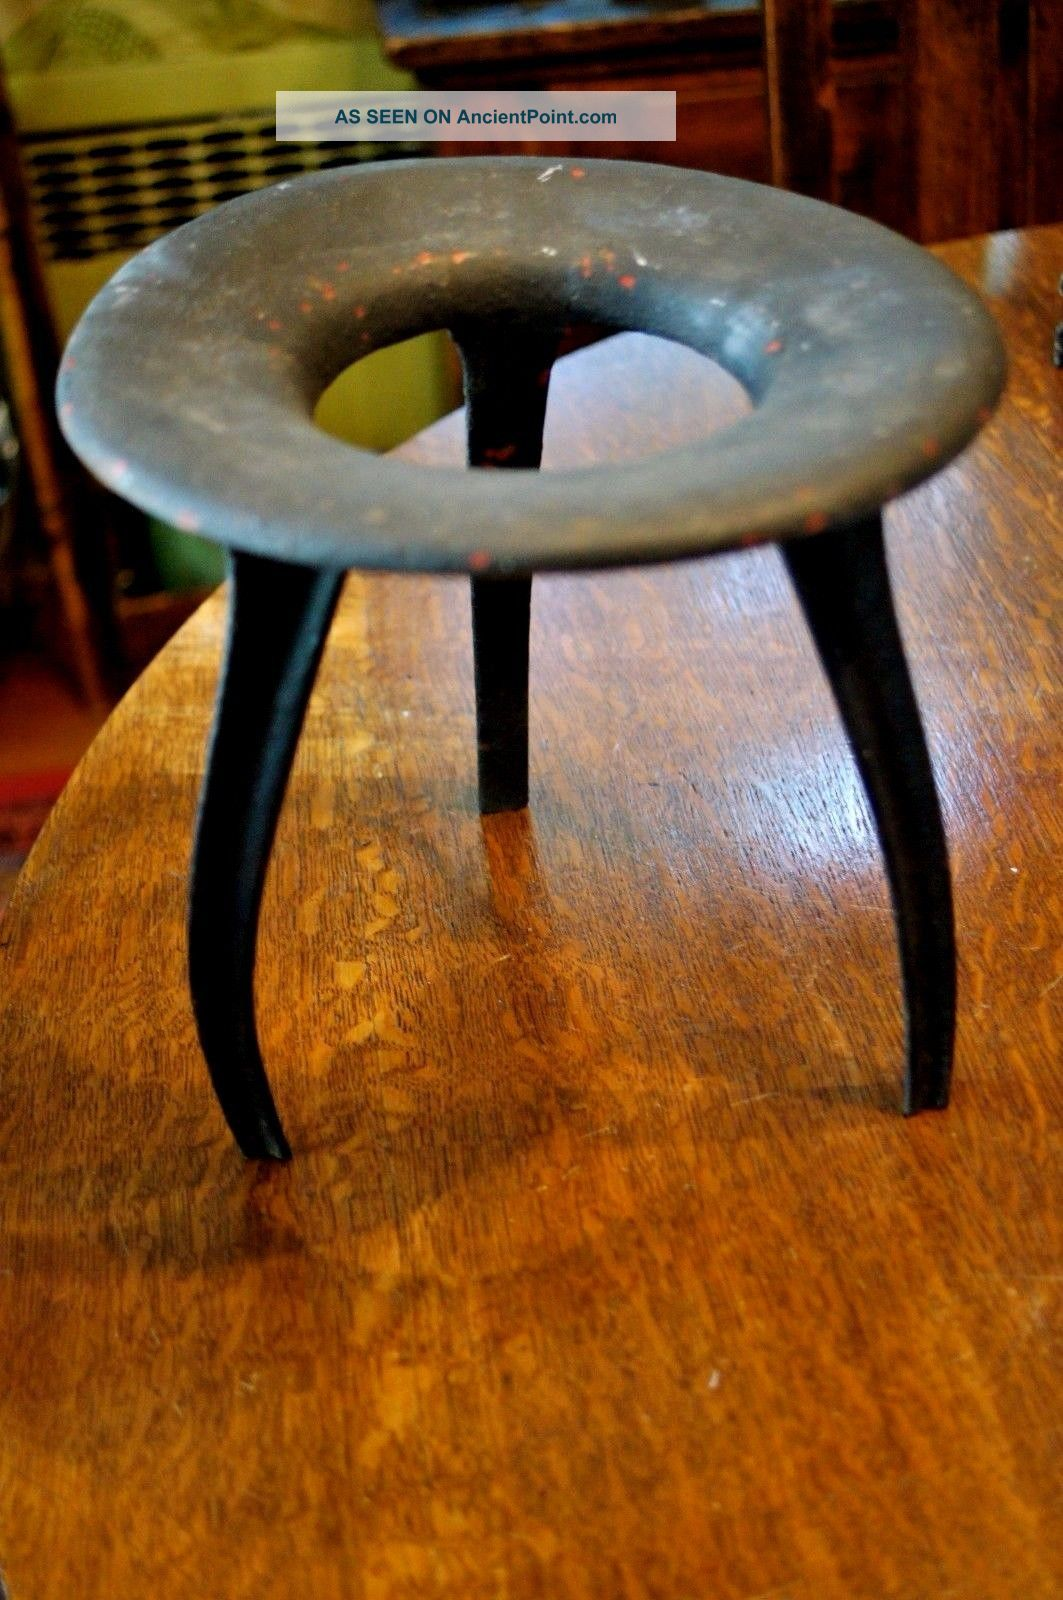 Antique Landsdowne Milking Stool Cast Iron Design Great Mid Modern Century Look 1900-1950 photo